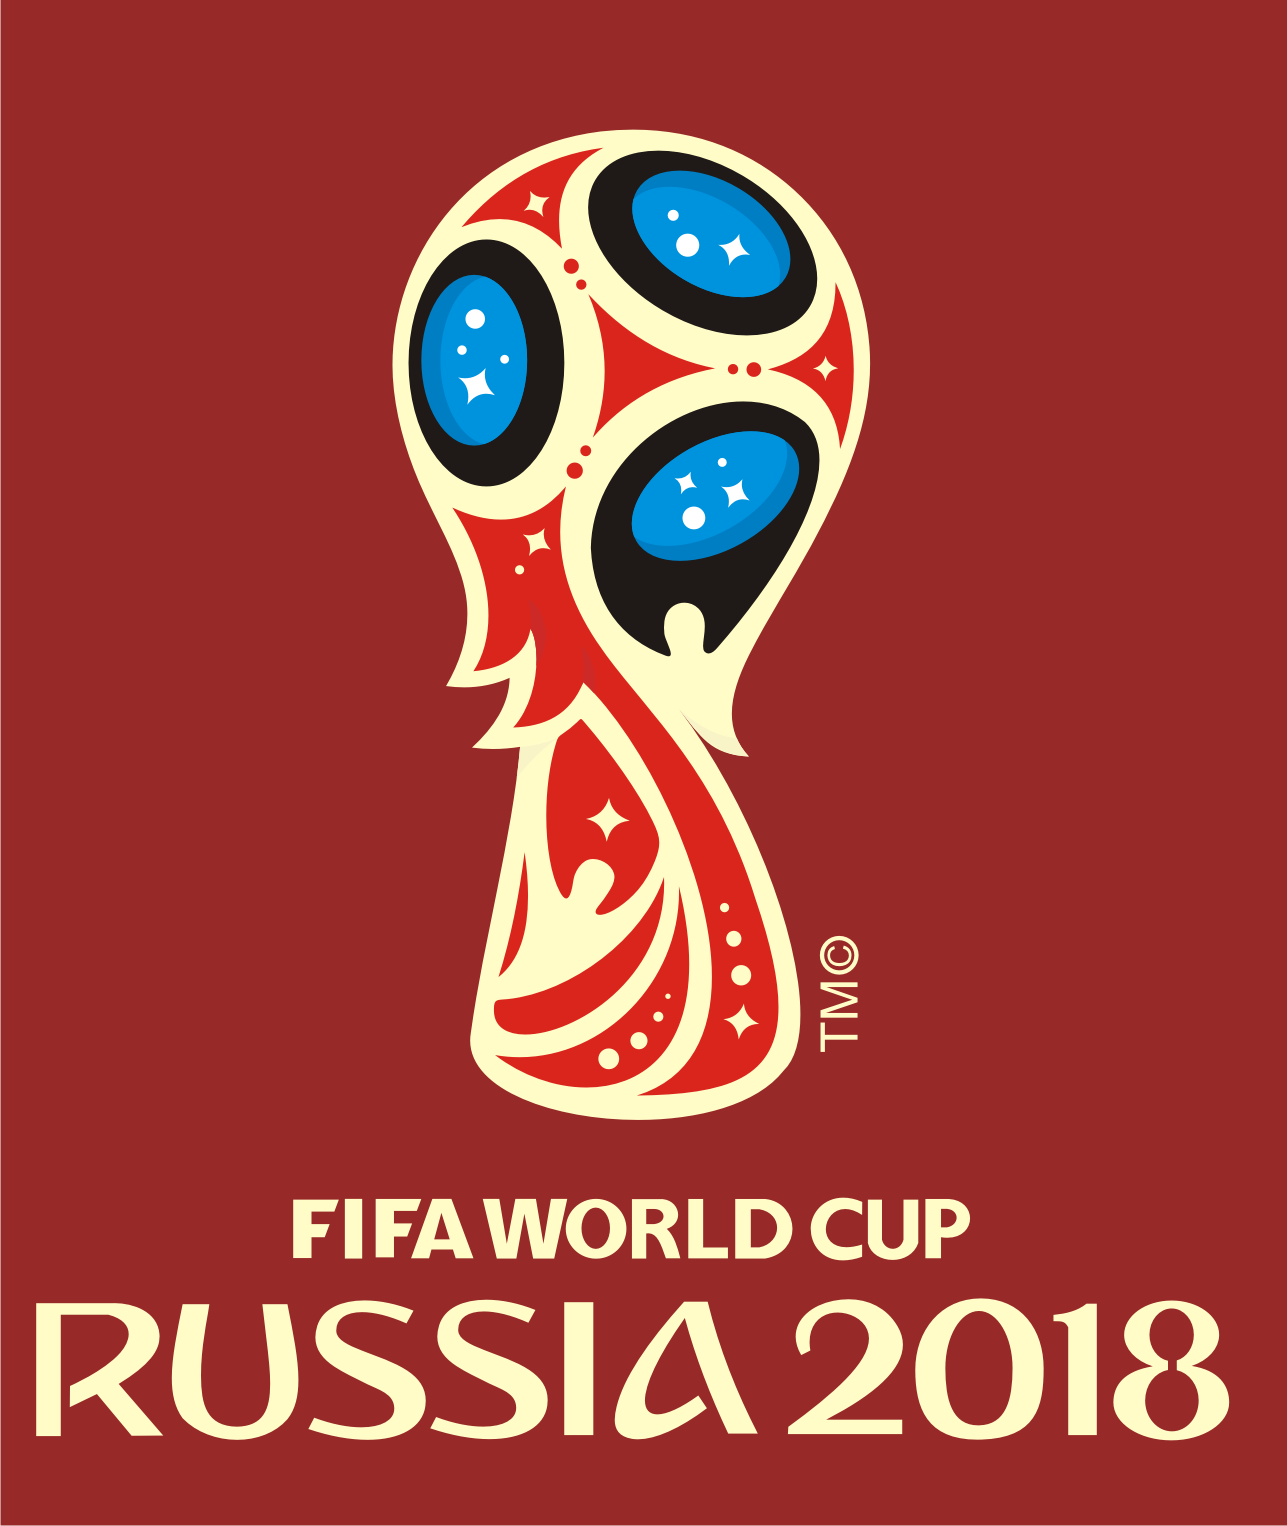 Filename: Fifa World Cup 2018 Logo.png - Logo Fifa World Cup 2018 PNG